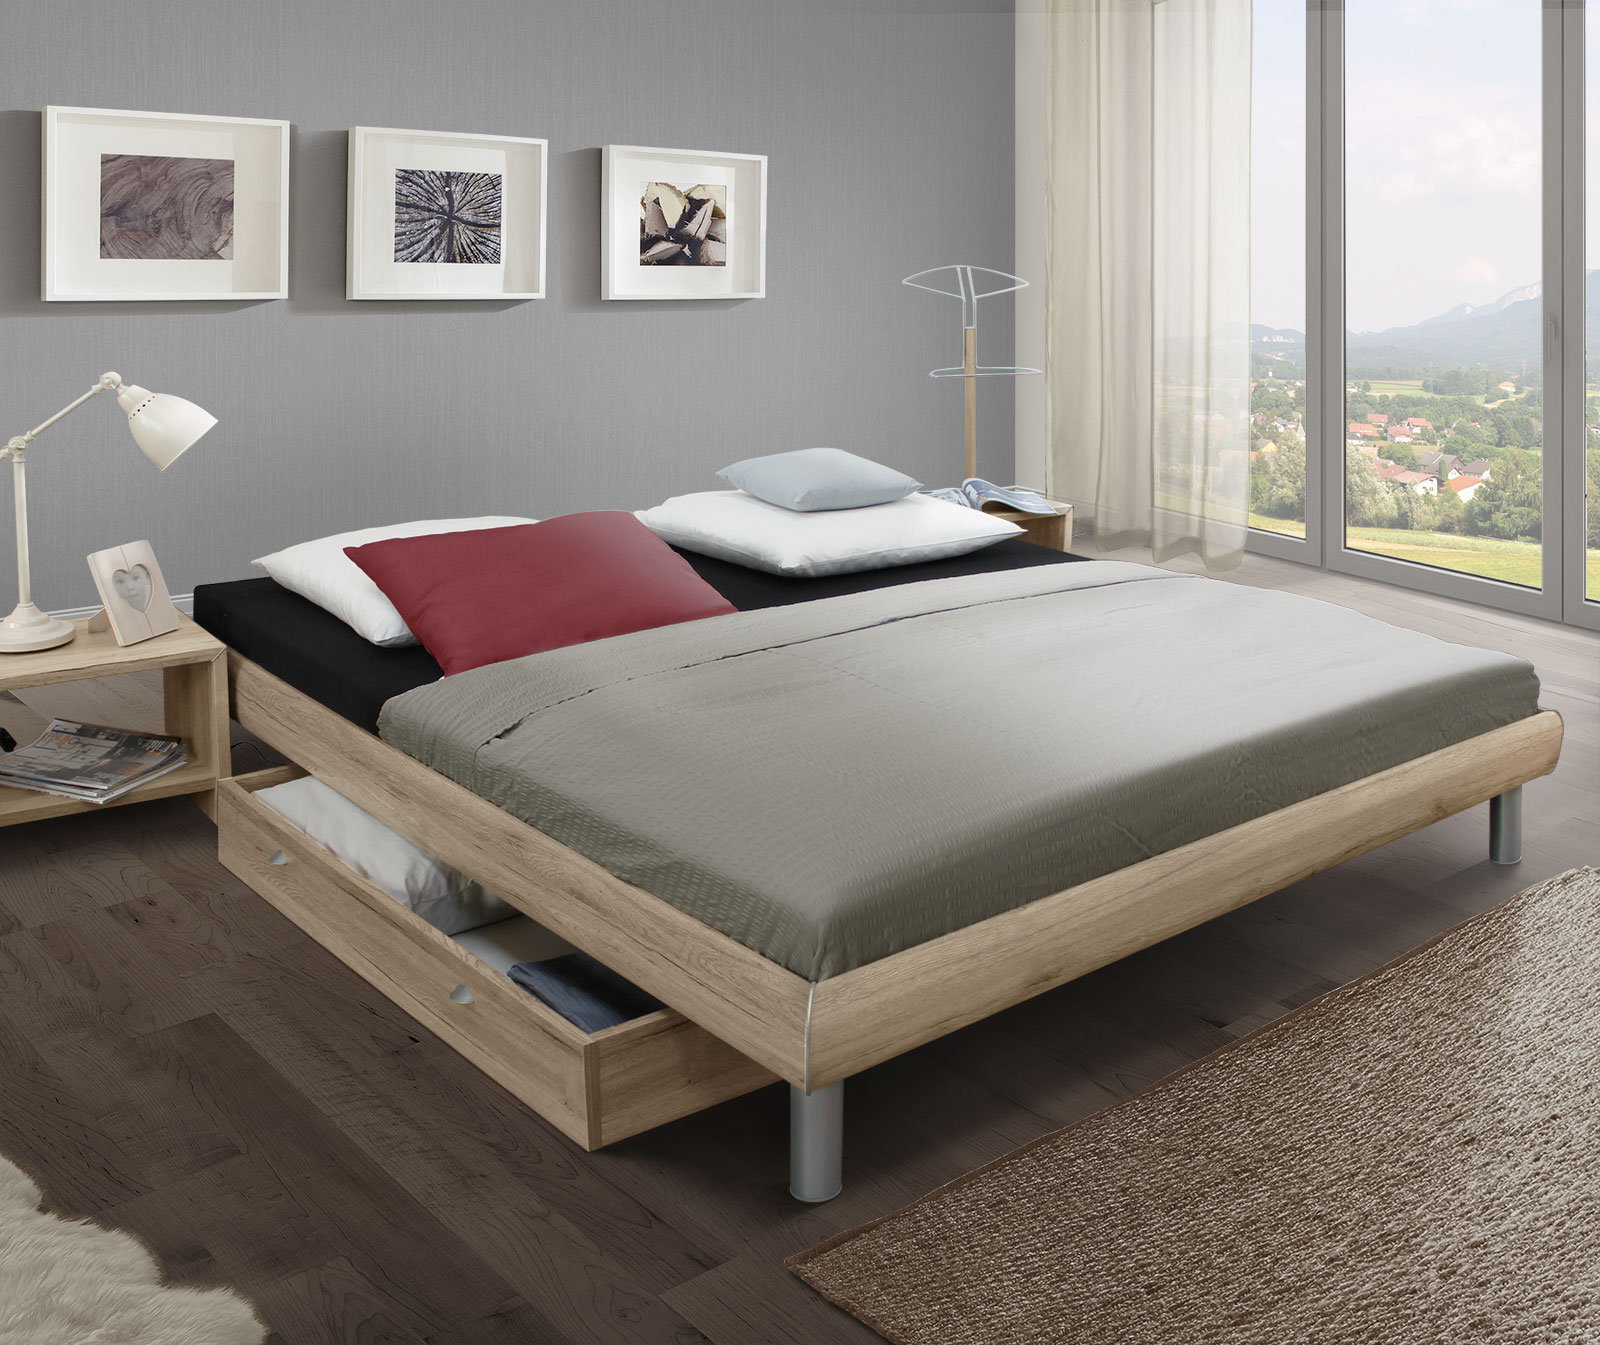 betten ohne kopfteil gunstig die neueste innovation der innenarchitektur und m bel. Black Bedroom Furniture Sets. Home Design Ideas